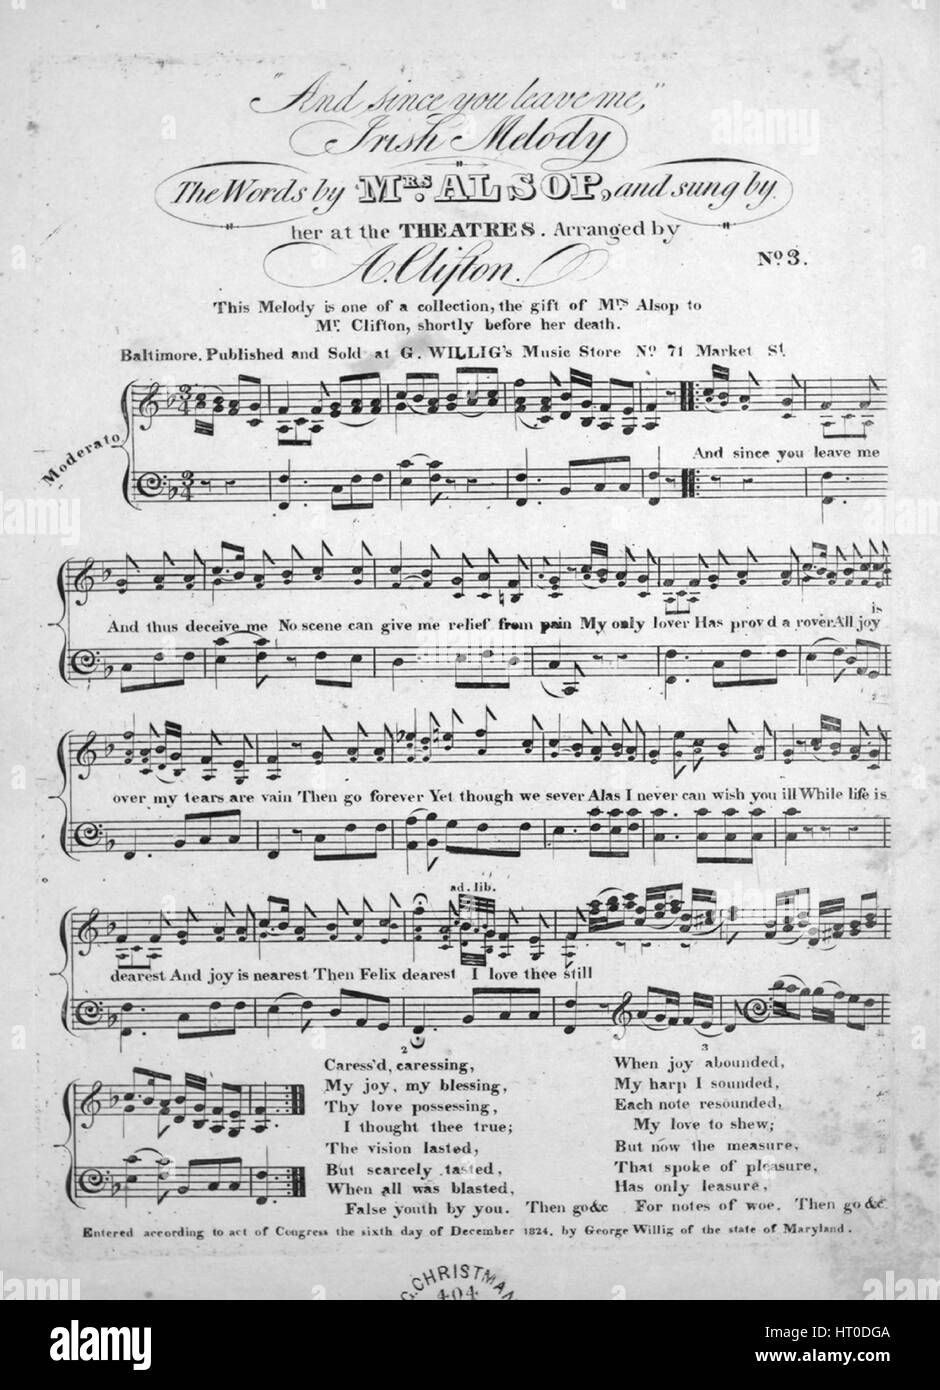 Sheet music cover image of the song 'And since you leave me